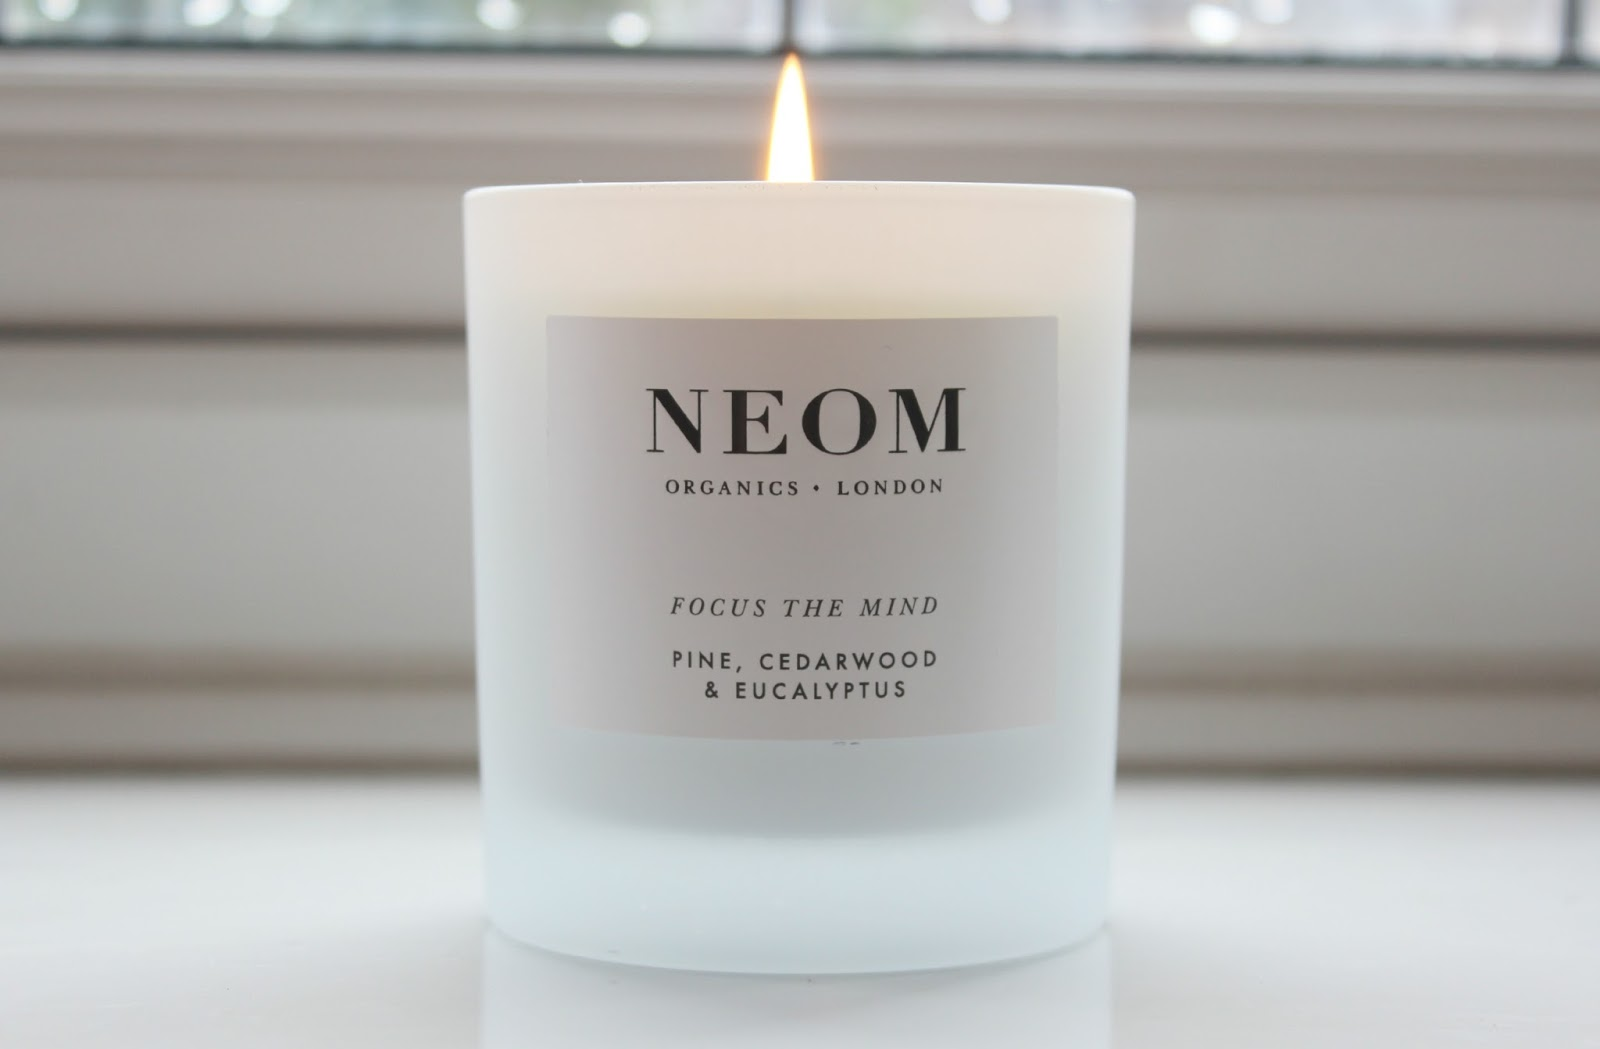 A picture of the NEOM Focus the Mind home candle